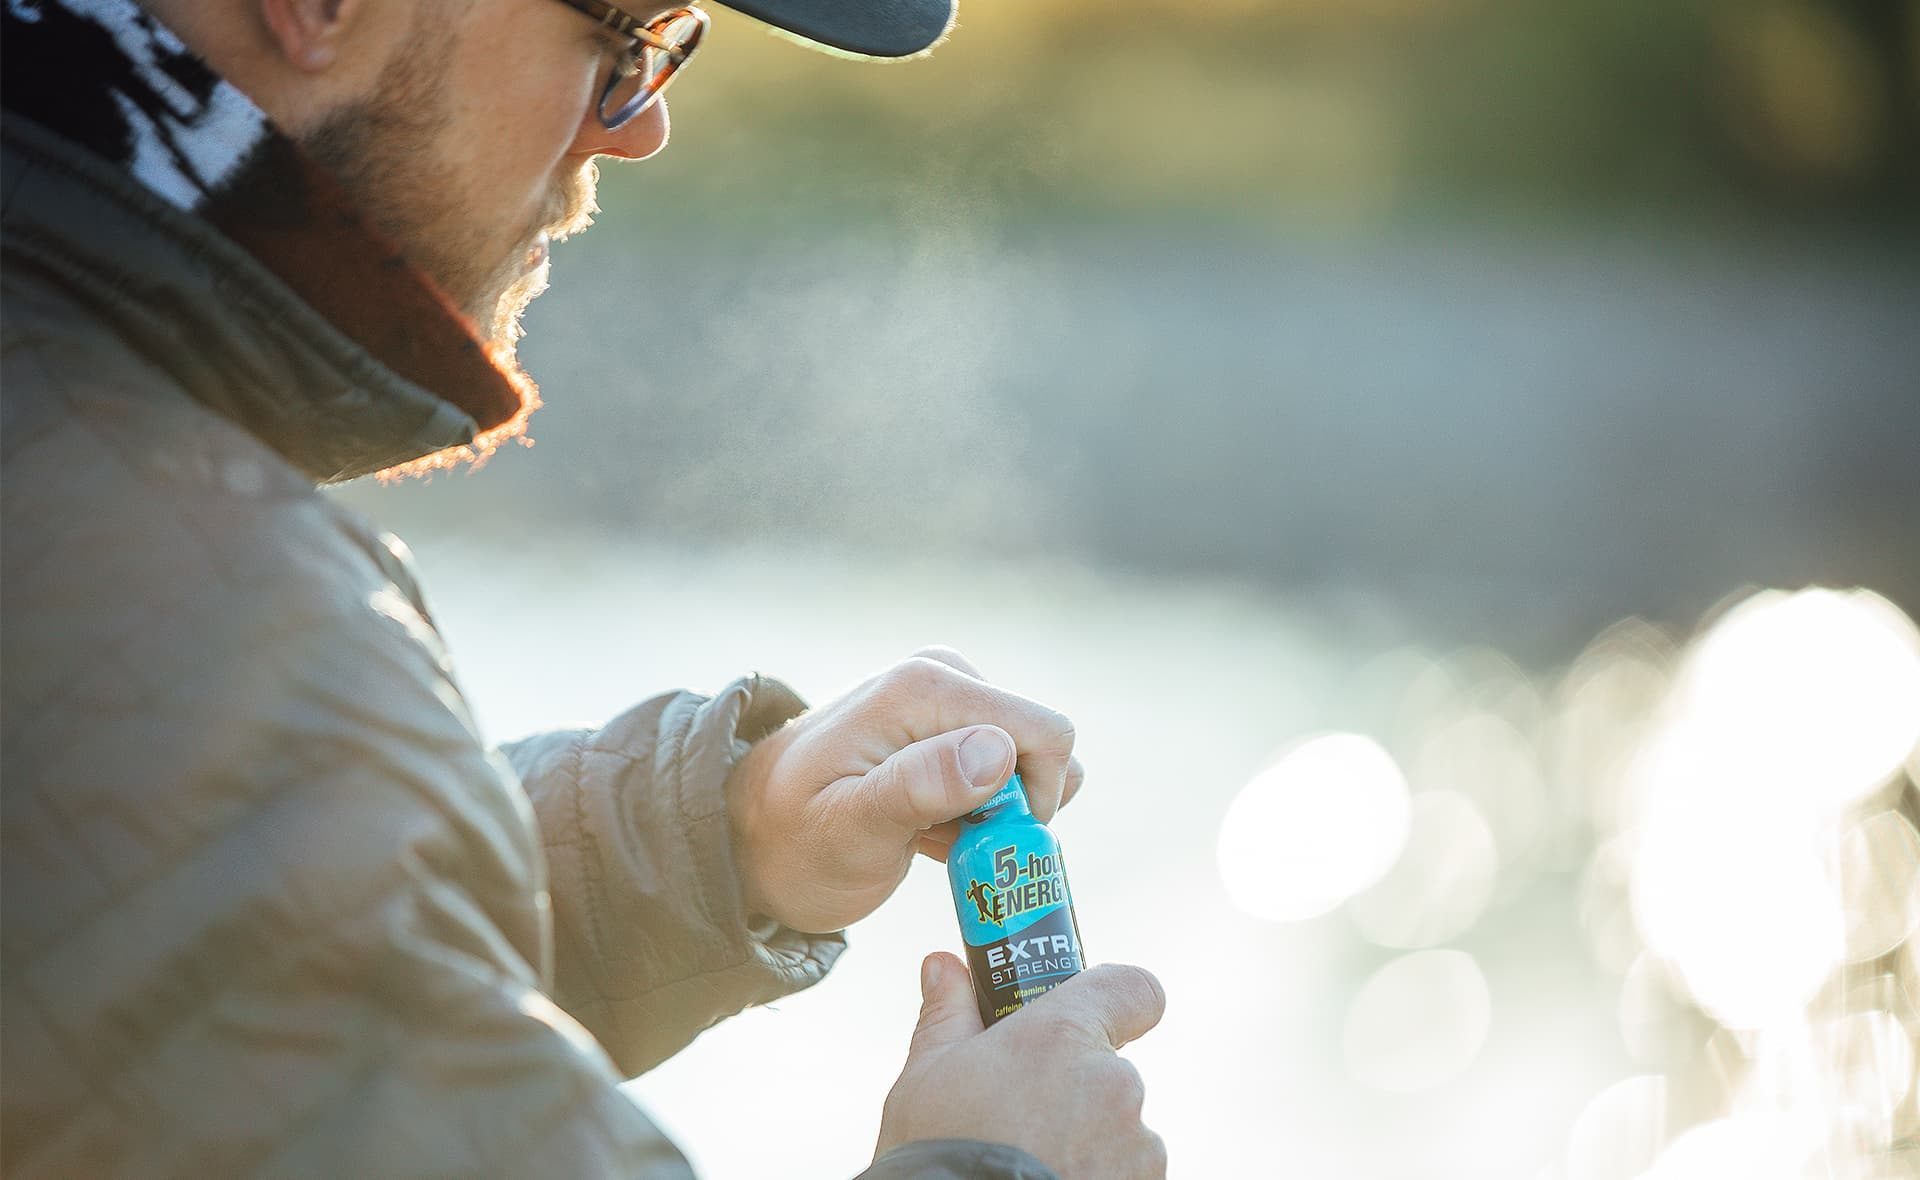 Lifestyle Product Photography with Male Model by Results Imagery